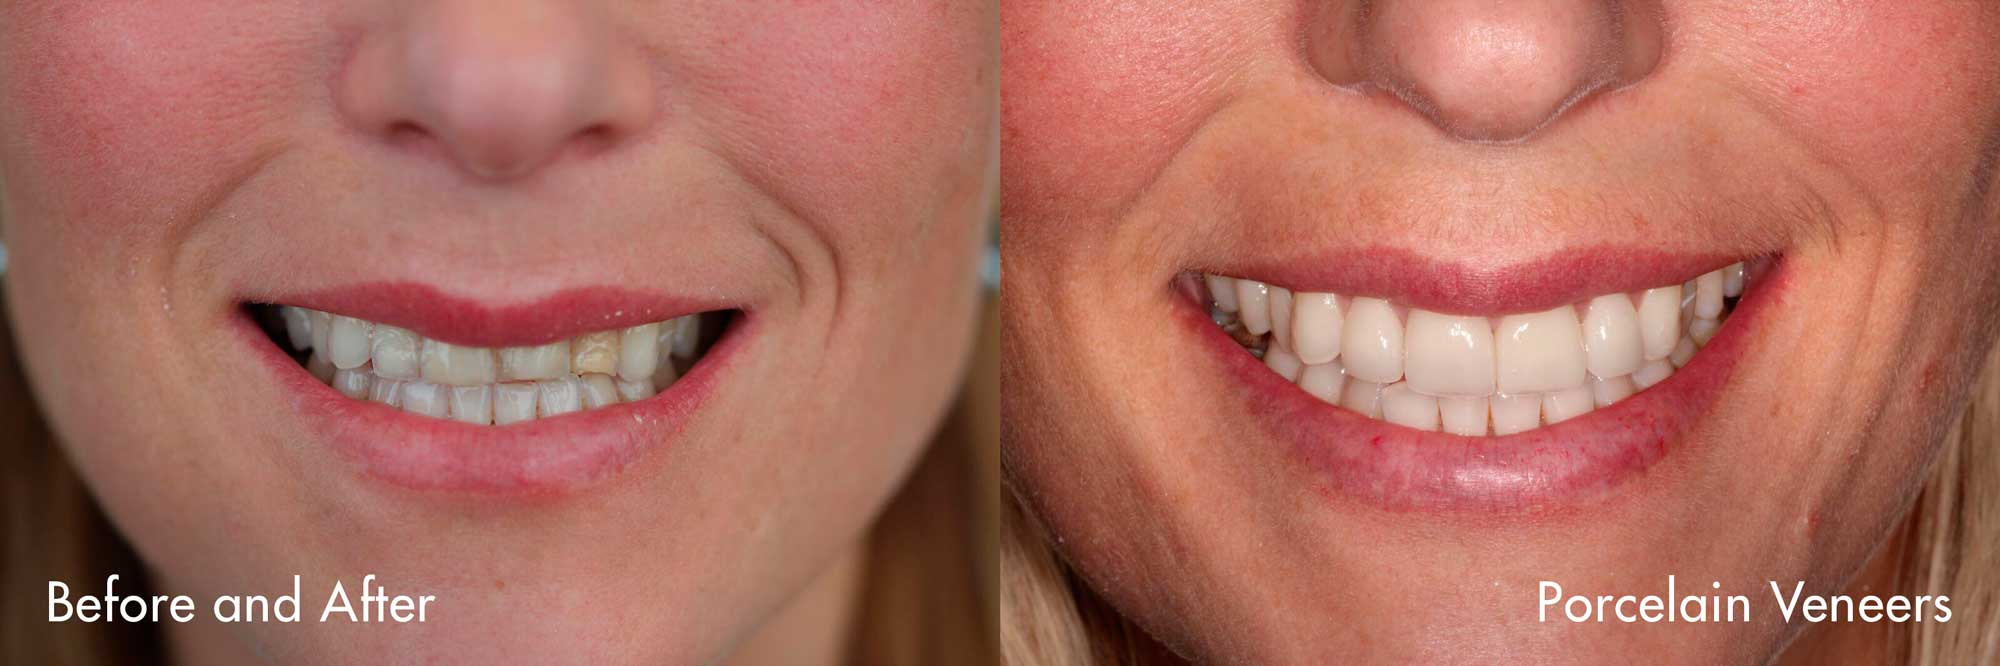 Veneers placed by Dr. Sidi in our office.   Veneers can completely reshape your teeth and smile. They can often be alternatives to crowns and the ideal solution in treating many dental conditions.